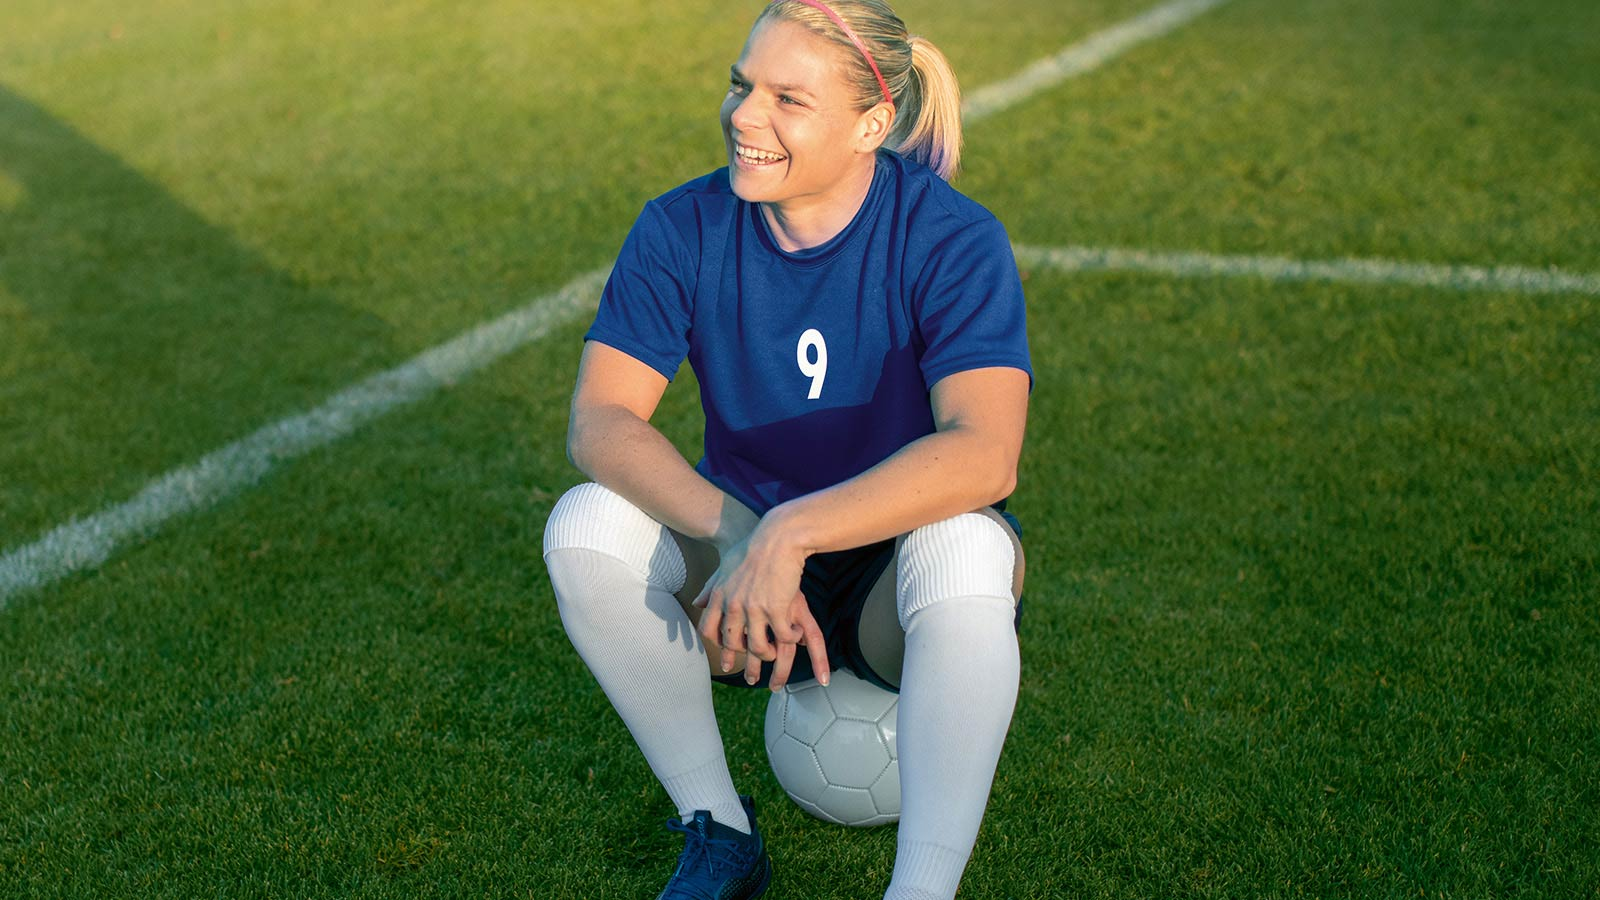 Eugenie Le Sommer sitting on top of a football and smiling.